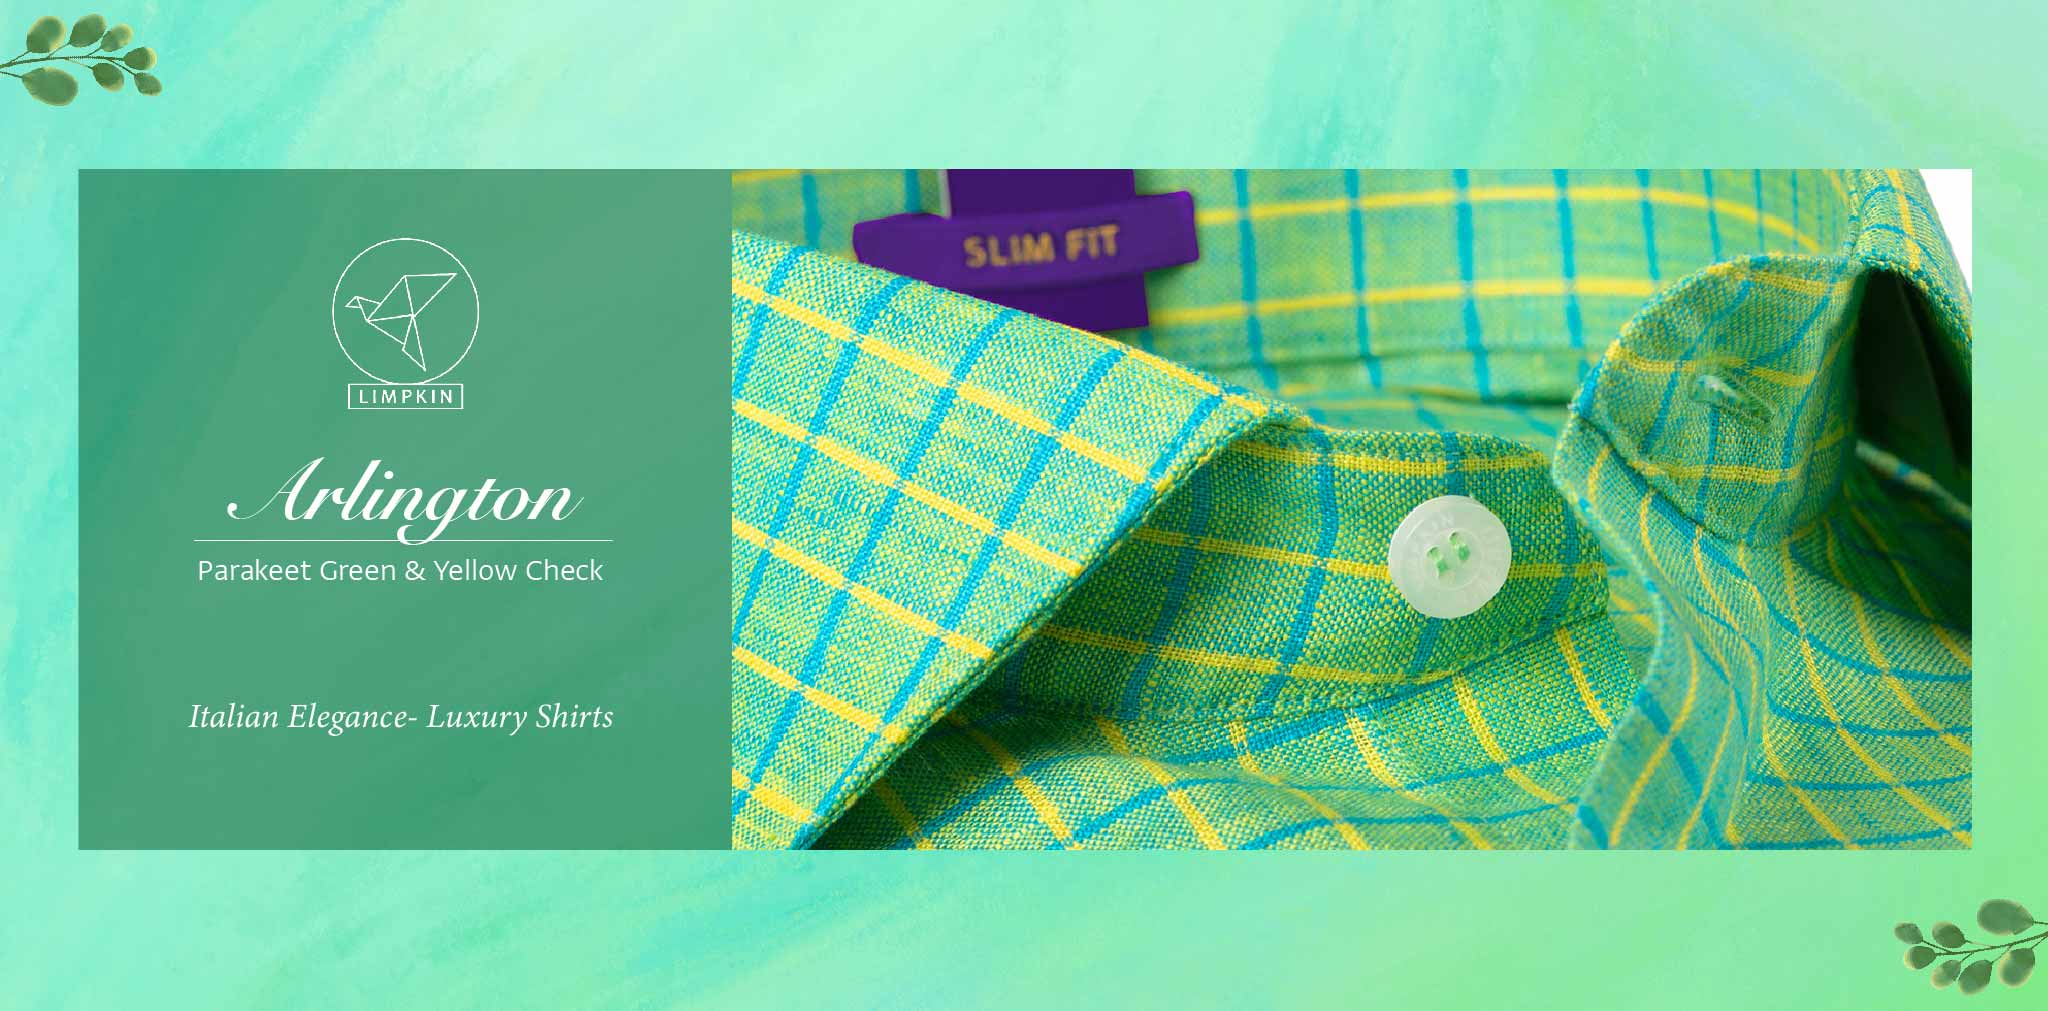 Arlington- Parakeet Green & Yellow Check- 66's Lea Pure Luxury Linen- Delivery from 10th March - Banner